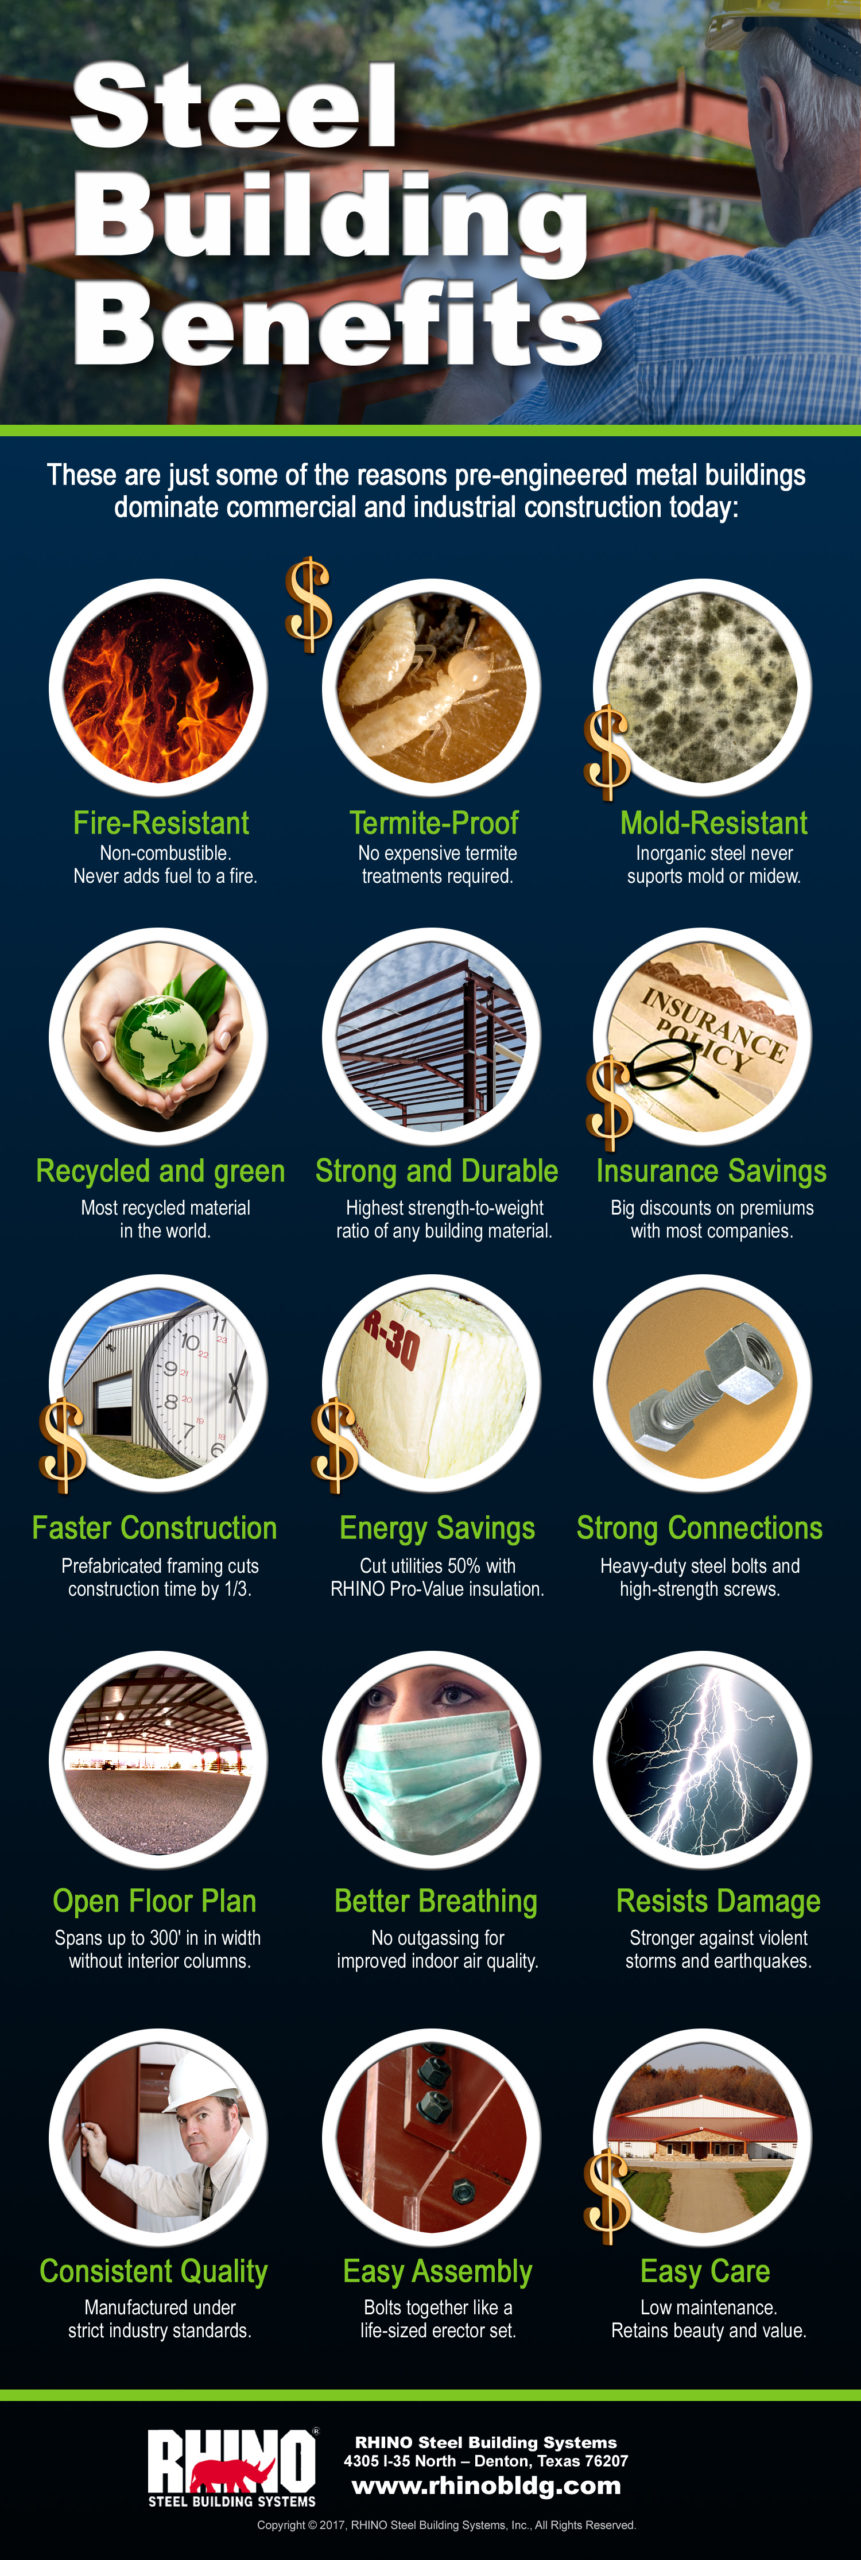 RHINO steel buildings benefits infographic shows 15 benefits provided by pre-engineered steel buidlings.